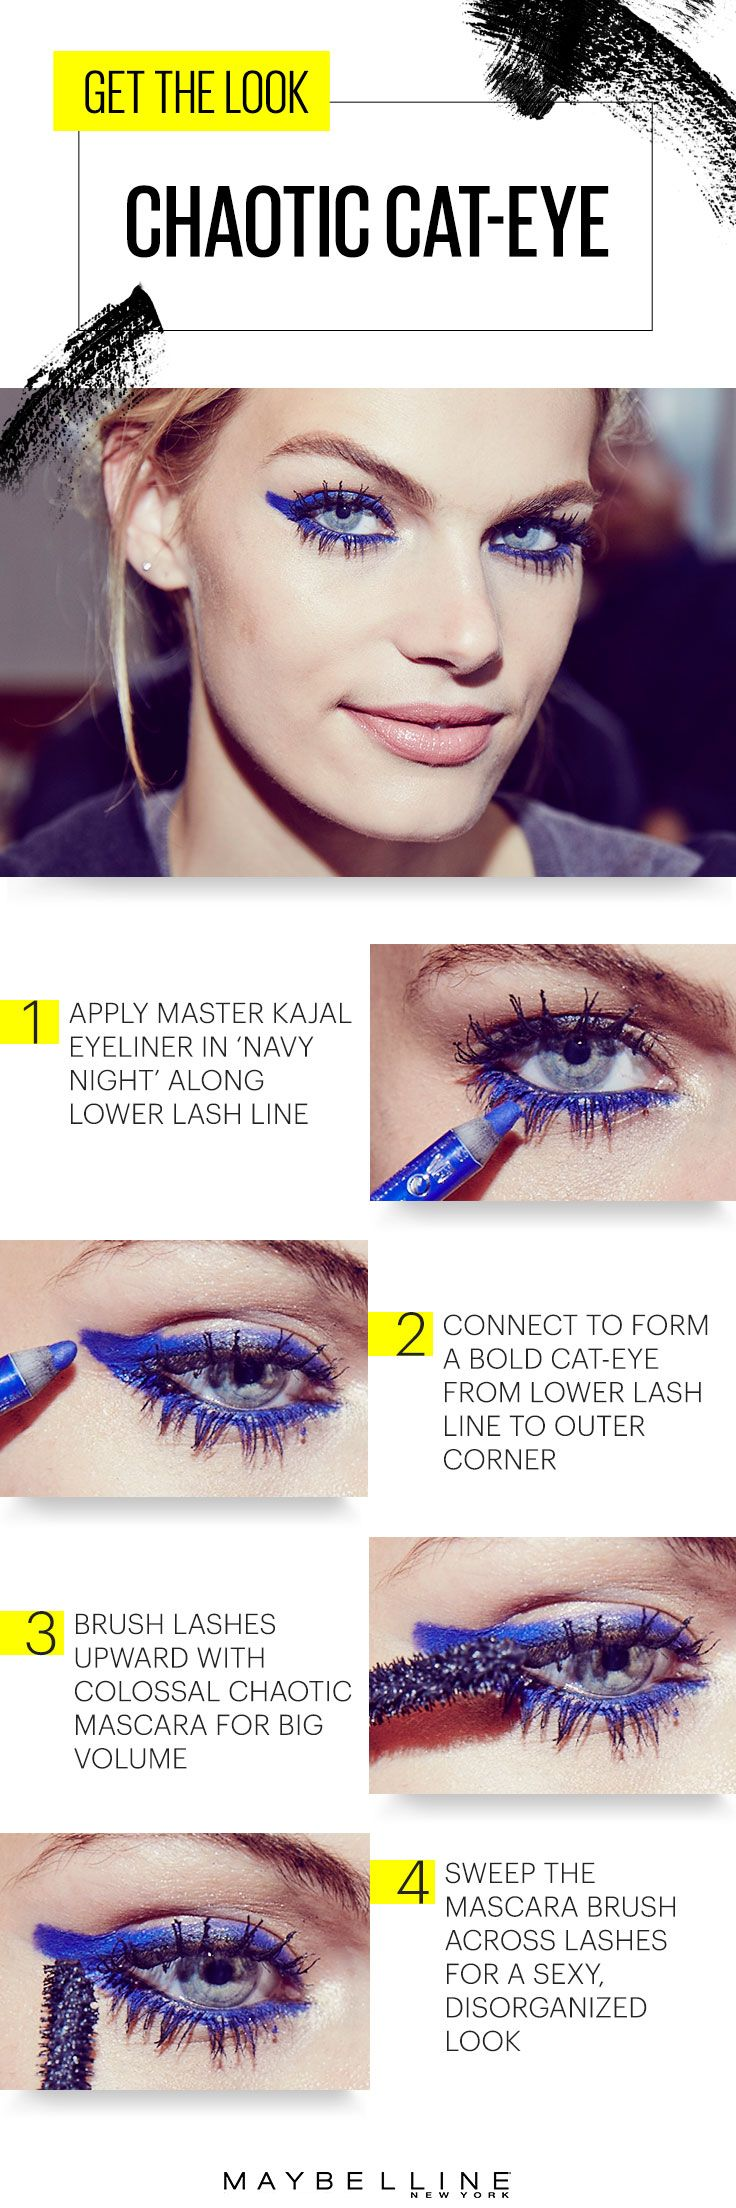 When the sun goes down, embrace the wild eyelash trend that we just can't get enough of. Go electric blue with a graphic winged eye using Master Kajal kohl eyeliner in 'Navy Night'. Create sexy, disorganized lashes with Colossal Chaotic Lash mascara. Finish the look with barely flushed lips, courtesy of Color Sensational Creamy Mattes lipstick. The night is young and the city calls!